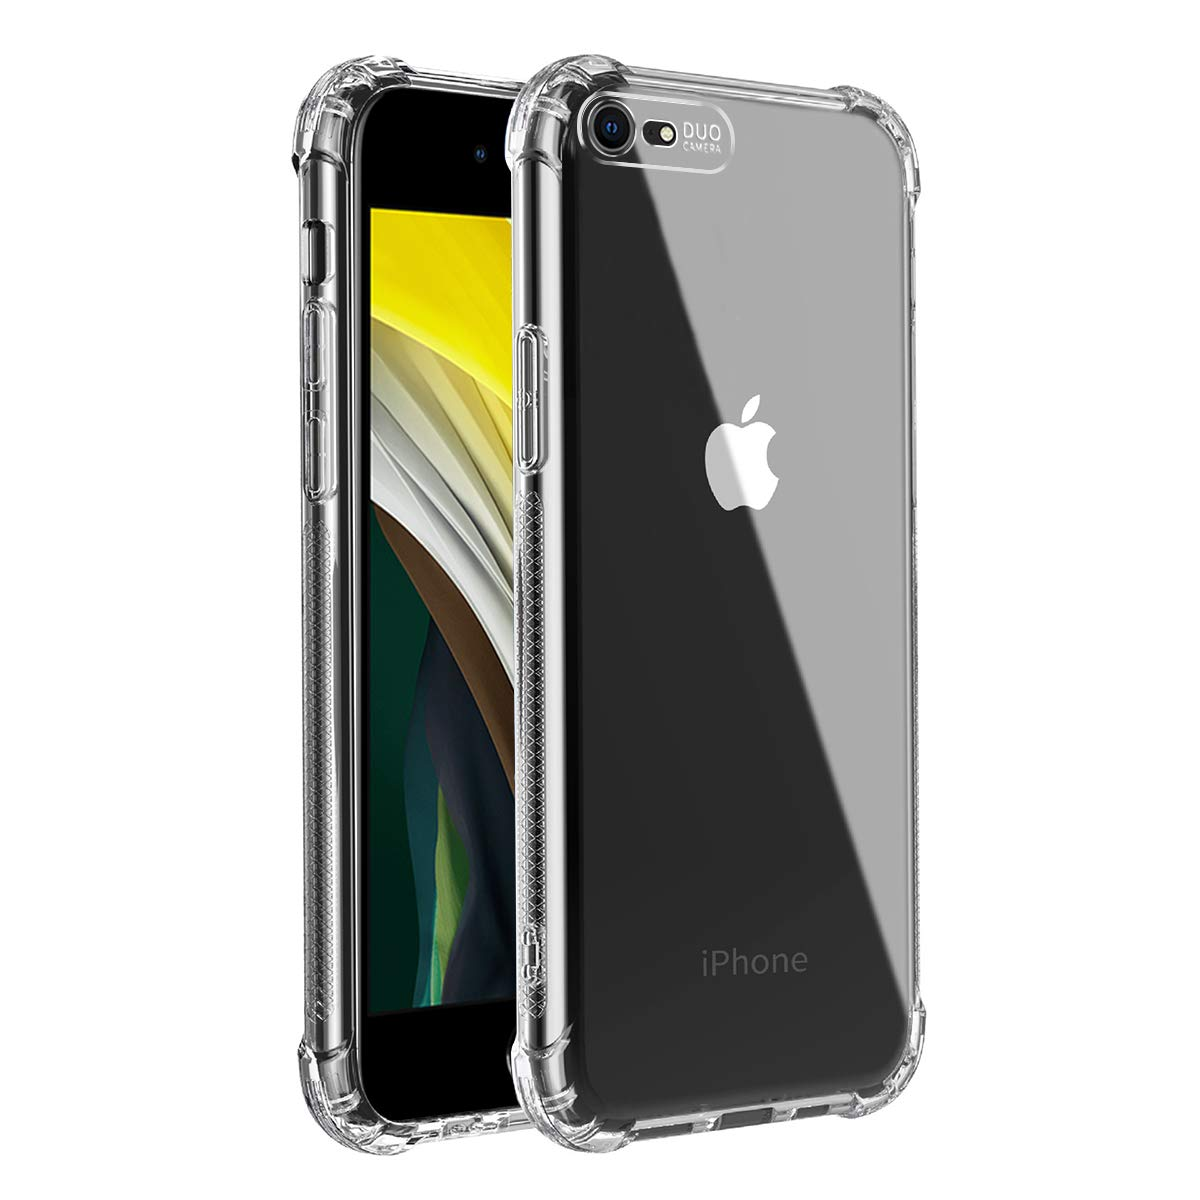 Mikikit Transparent Phone Case for New iPhone SE 2, Thin Clear Case for iPhone SE 2 Crystal Clear Case Soft TPU Cover with 4 Corners Drop Protection Bumper Protective Case for iPhone 7/8/SE 2020